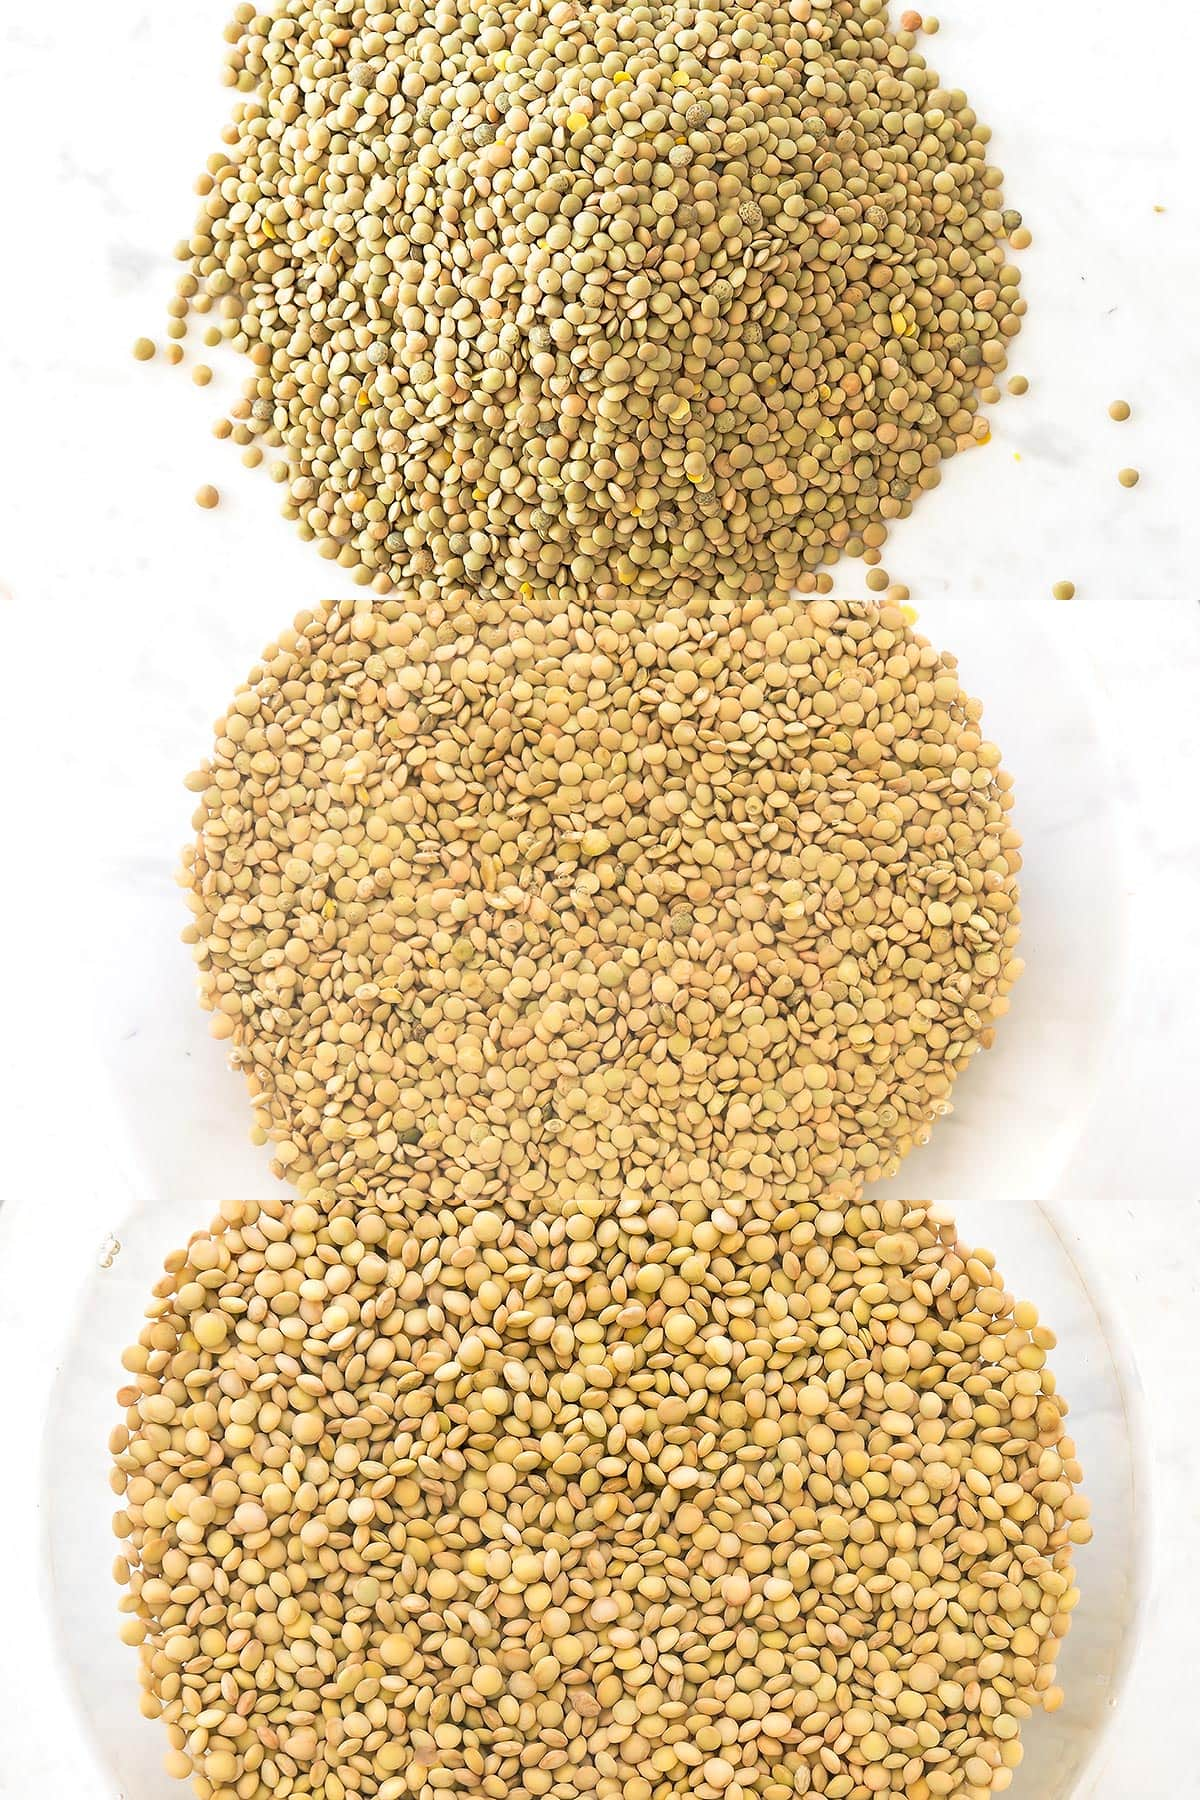 Dry and soaked lentils